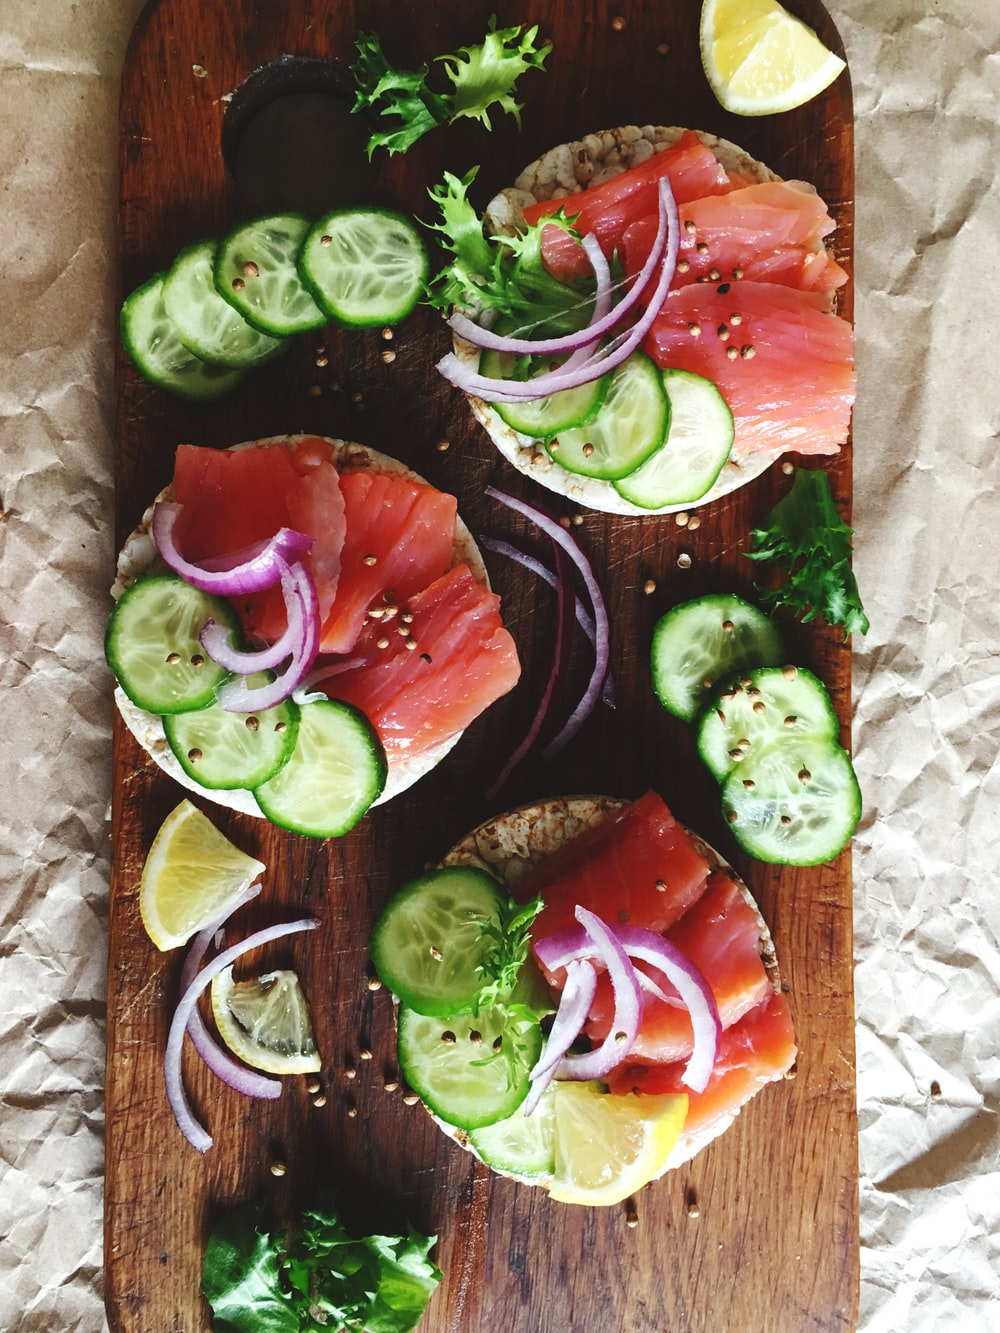 raw fish filet with vegetable and spices on chopping board